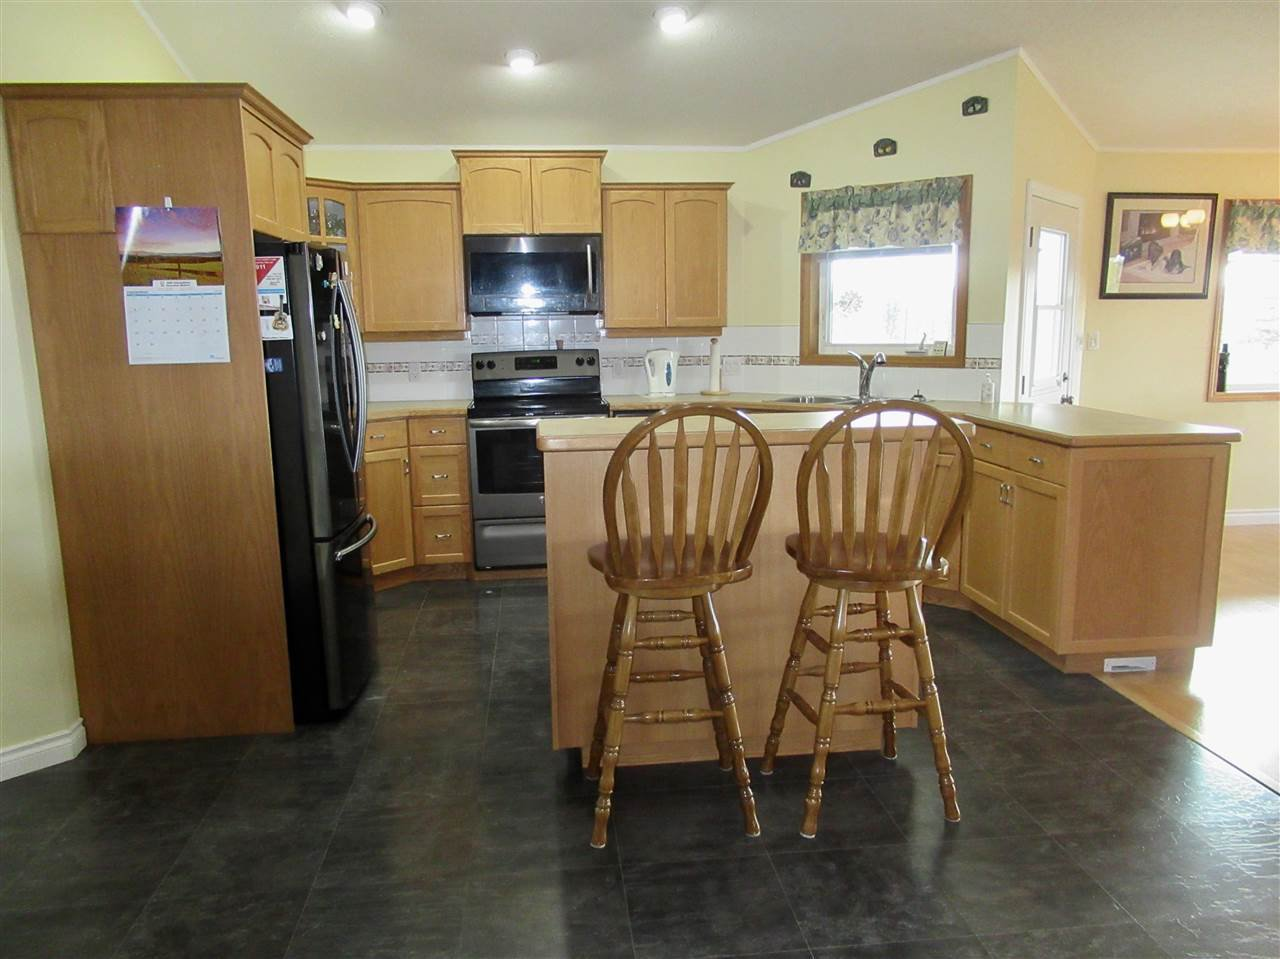 Photo 2: Photos: 2884 GOLD DIGGER Drive: 150 Mile House House for sale (Williams Lake (Zone 27))  : MLS®# R2409553